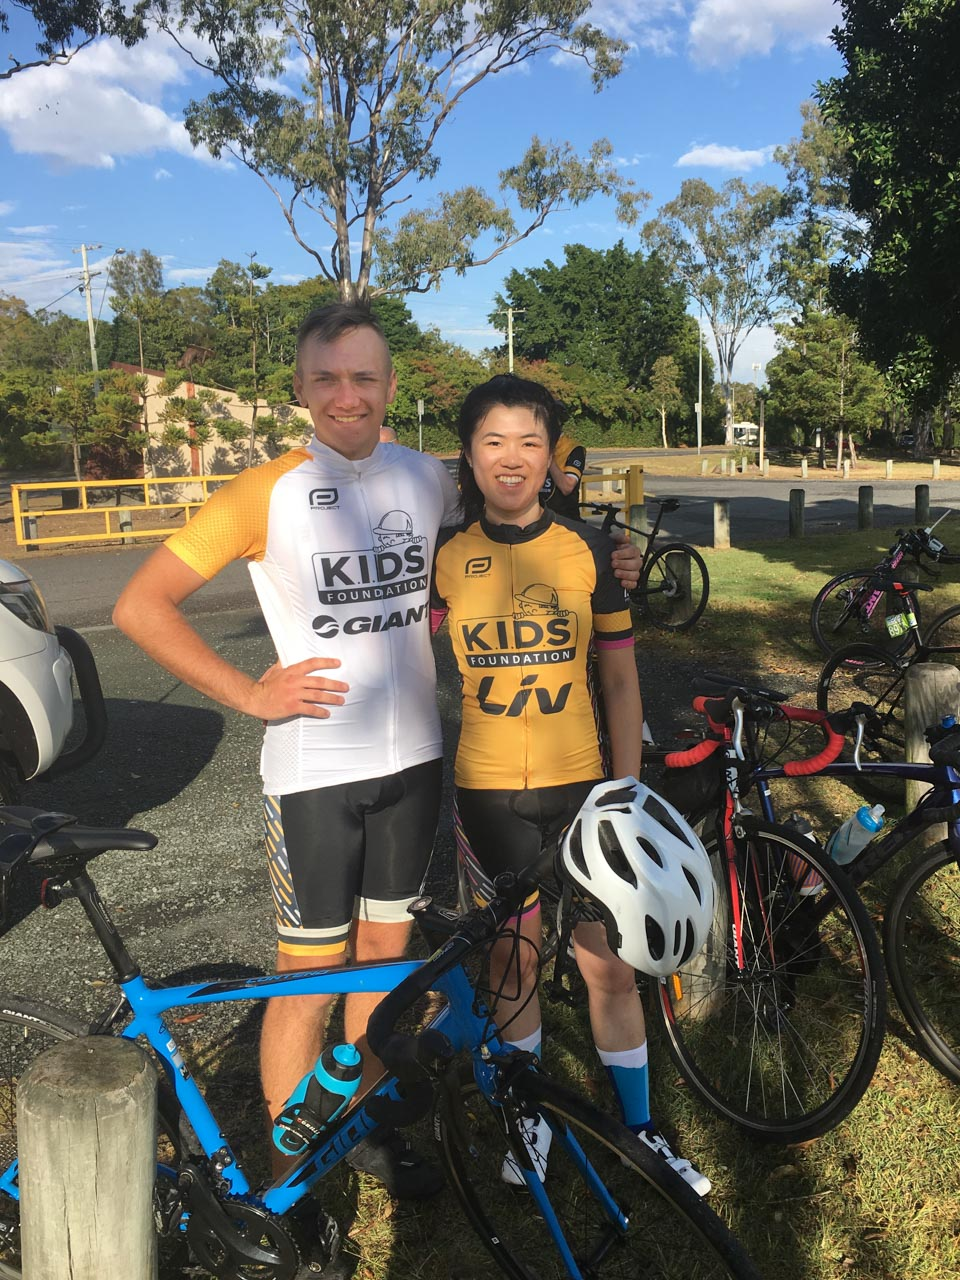 Declan Diete pictured with Annie Louey at a rest stop.